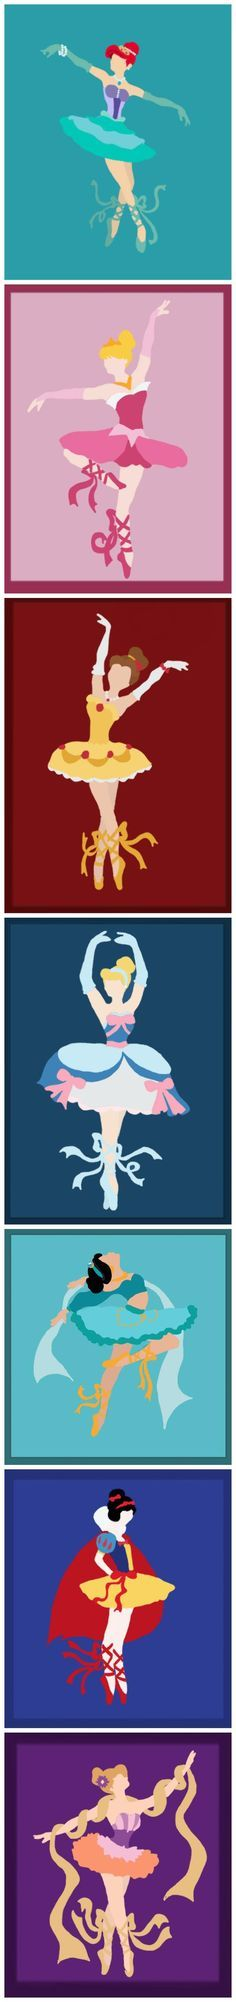 Disney princesses as ballerinas!.